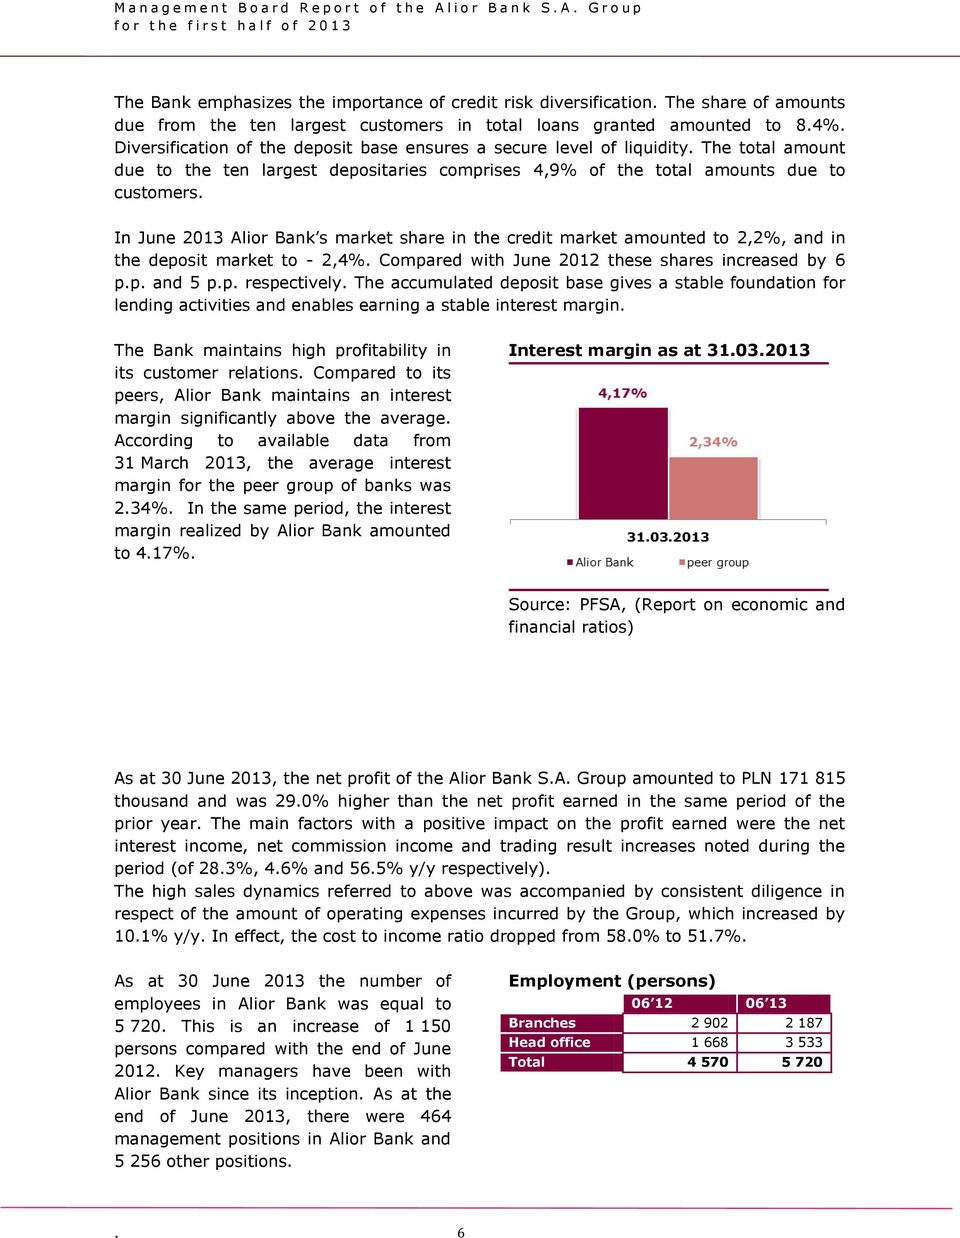 In June 2013 Alior Bank s market share in the credit market amounted to 2,2%, and in the deposit market to - 2,4%. Compared with June 2012 these shares increased by 6 p.p. and 5 p.p. respectively.